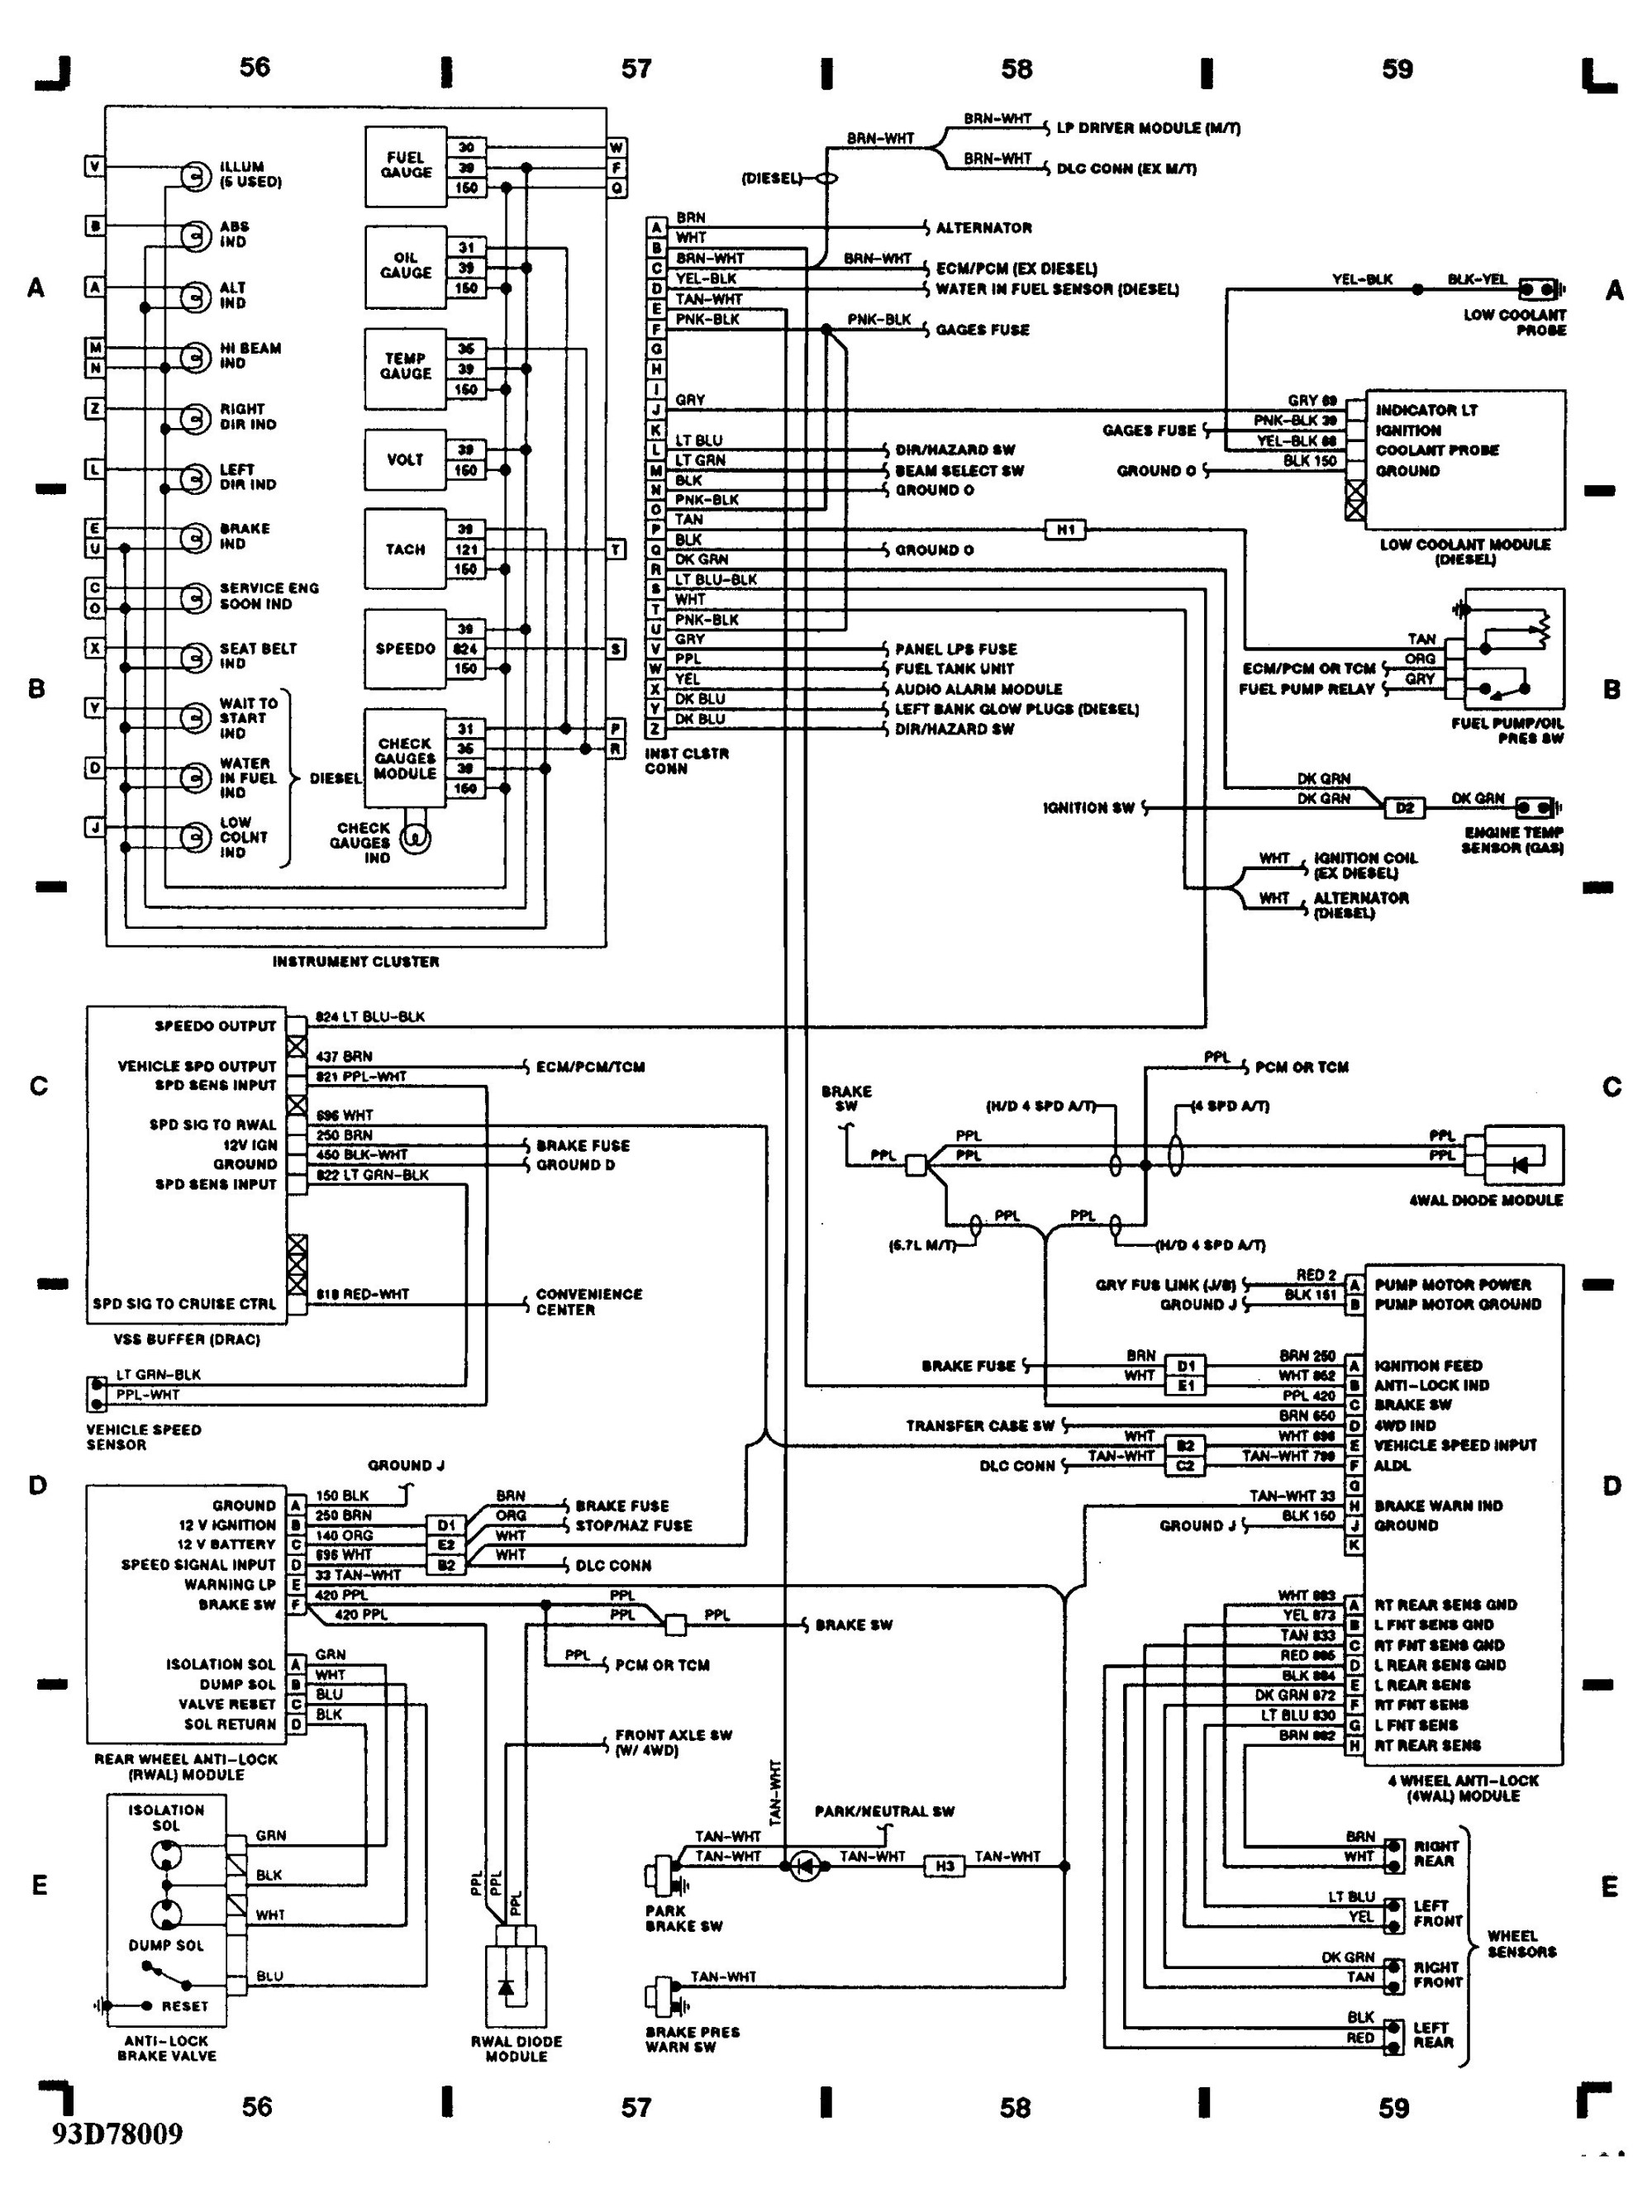 hight resolution of dodge 3 9 engine diagram distributor location wiring librarychevy s10 4 3 vortec engine diagram start